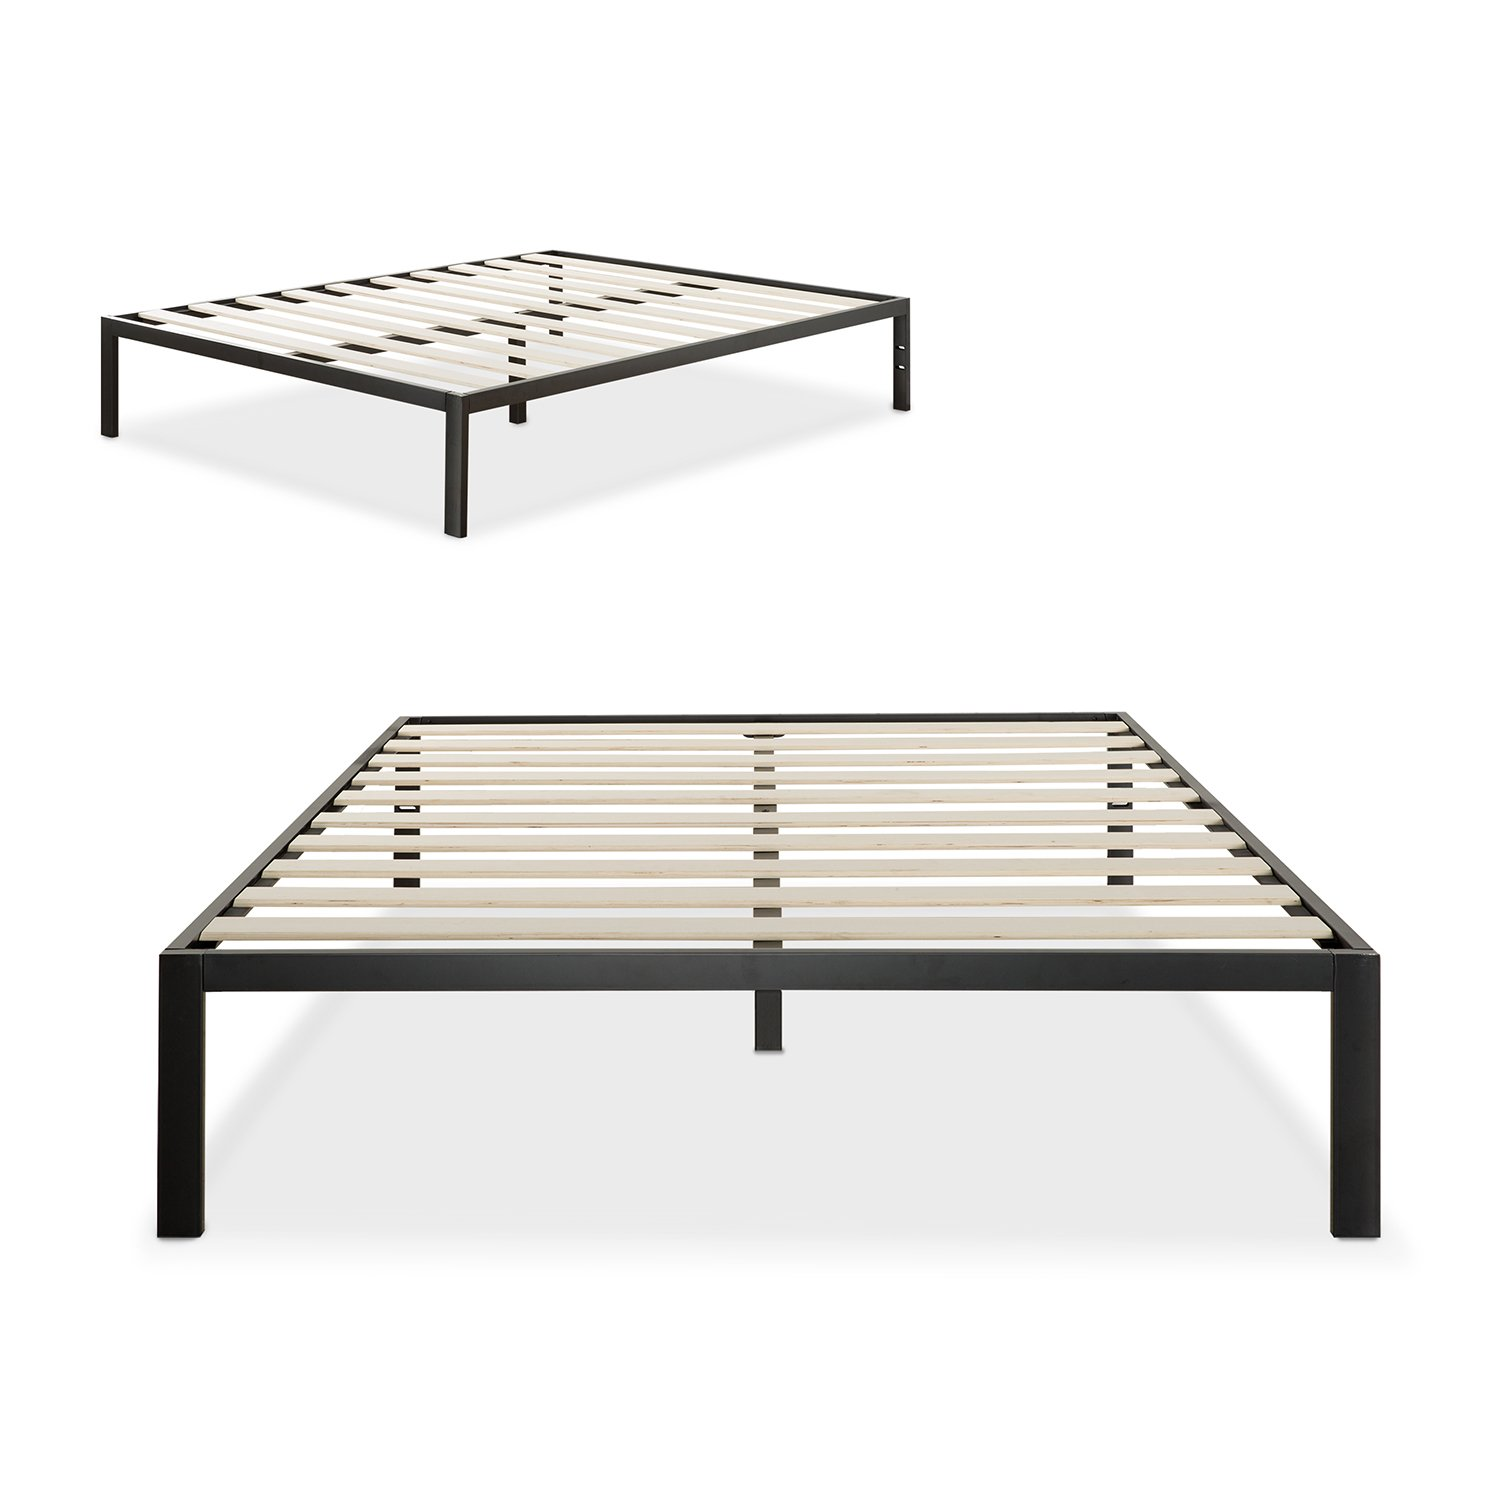 amazoncom zinus modern studio 14 inch platform 1500 metal bed frame mattress foundation no boxspring needed wooden slat support black - Steel Bed Frames